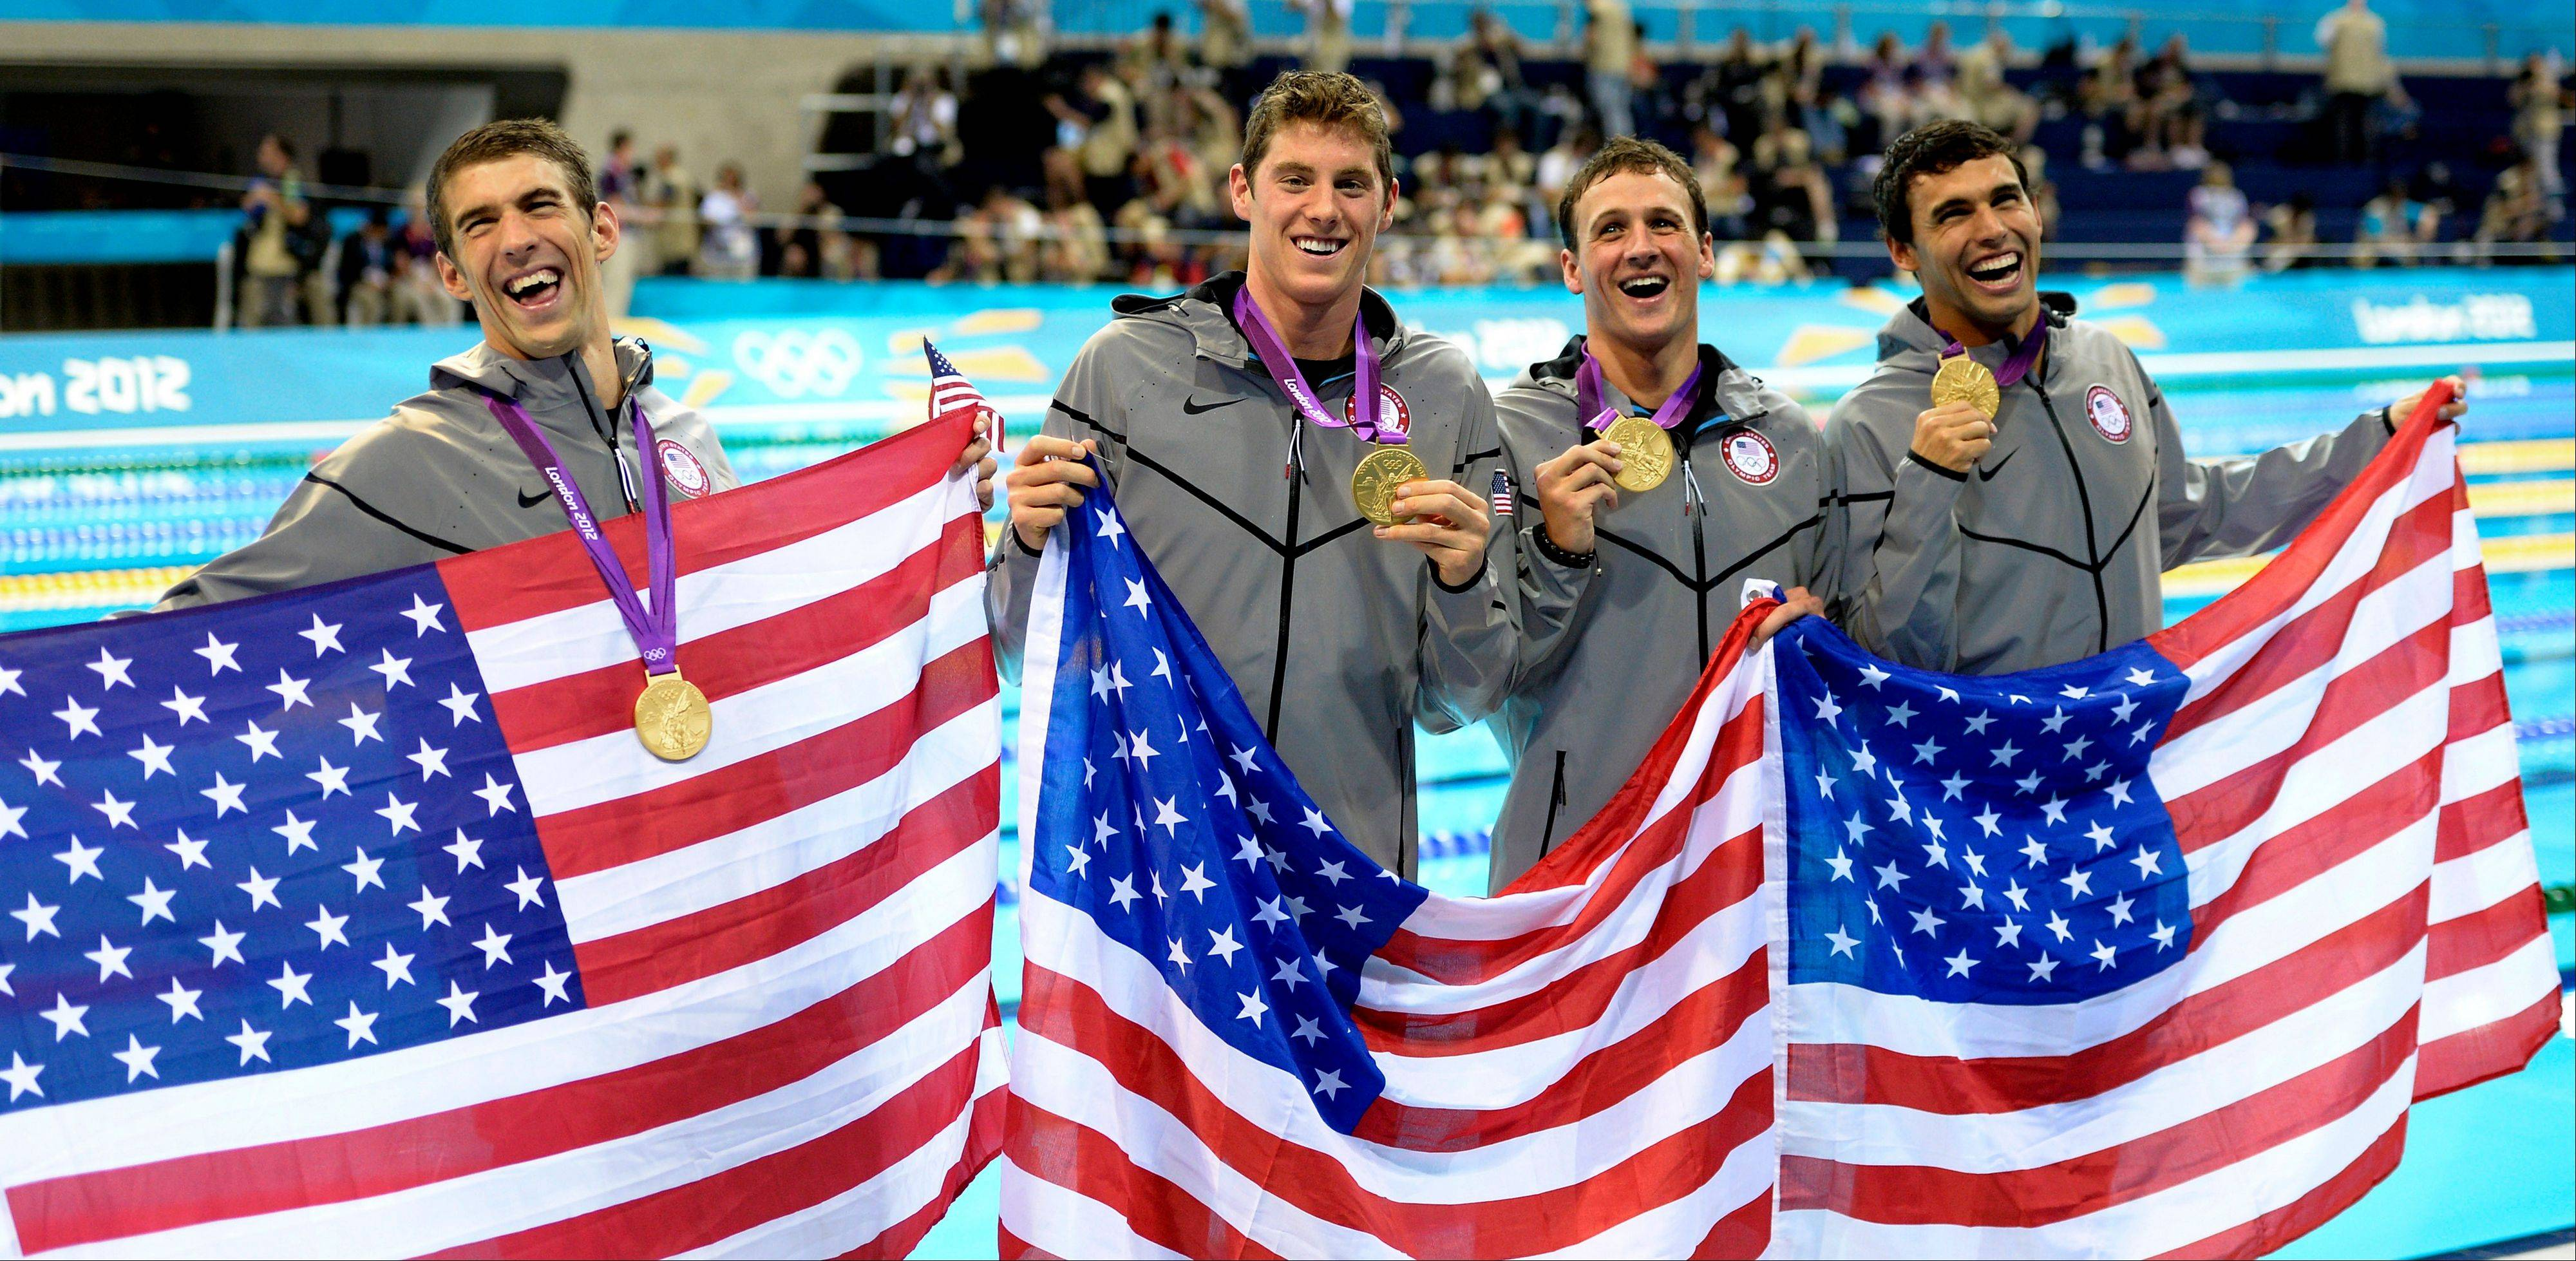 From left, Michael Phelps, Conor Dwyer of Winnetka, Ricky Berens and Ryan Lochte celebrate their gold medal Tuesday in the 4x200-meter freestyle relay swimming final.